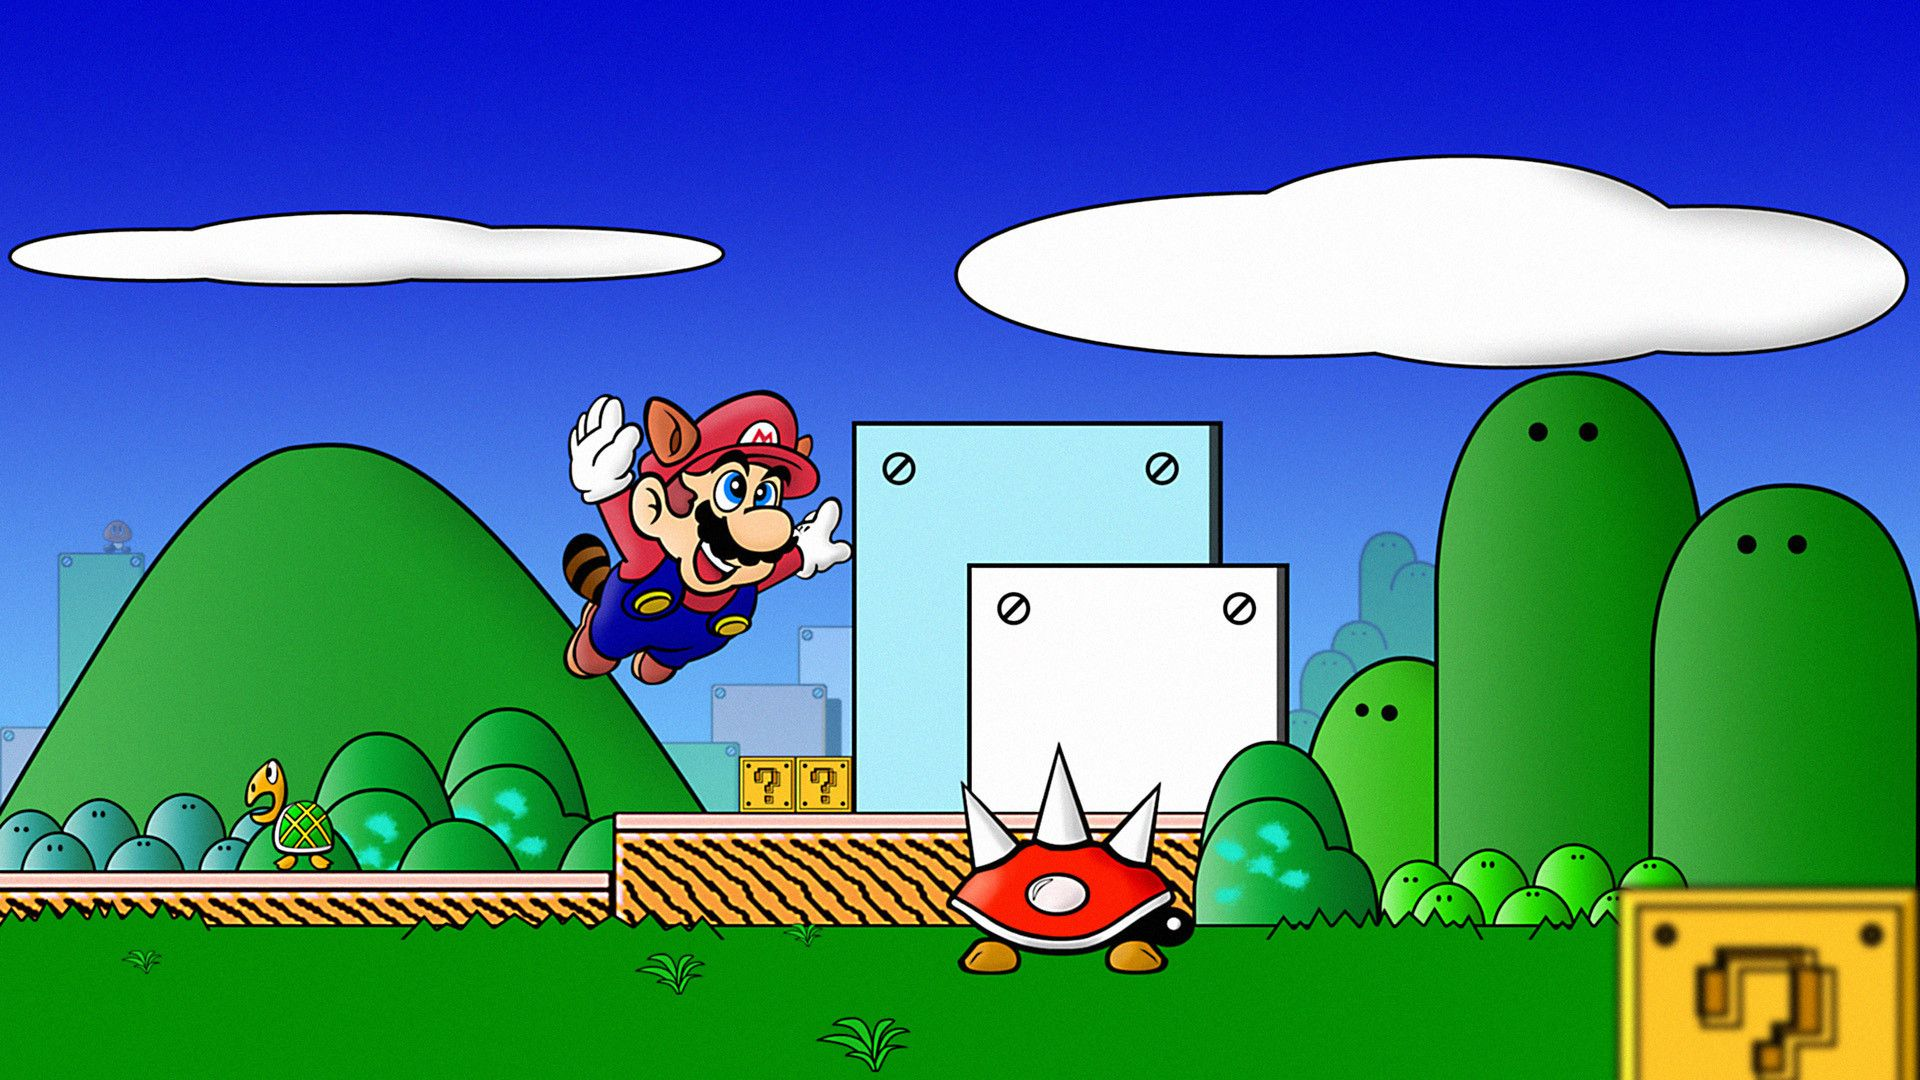 Wallpapers Mario Bros Posted By John Johnson